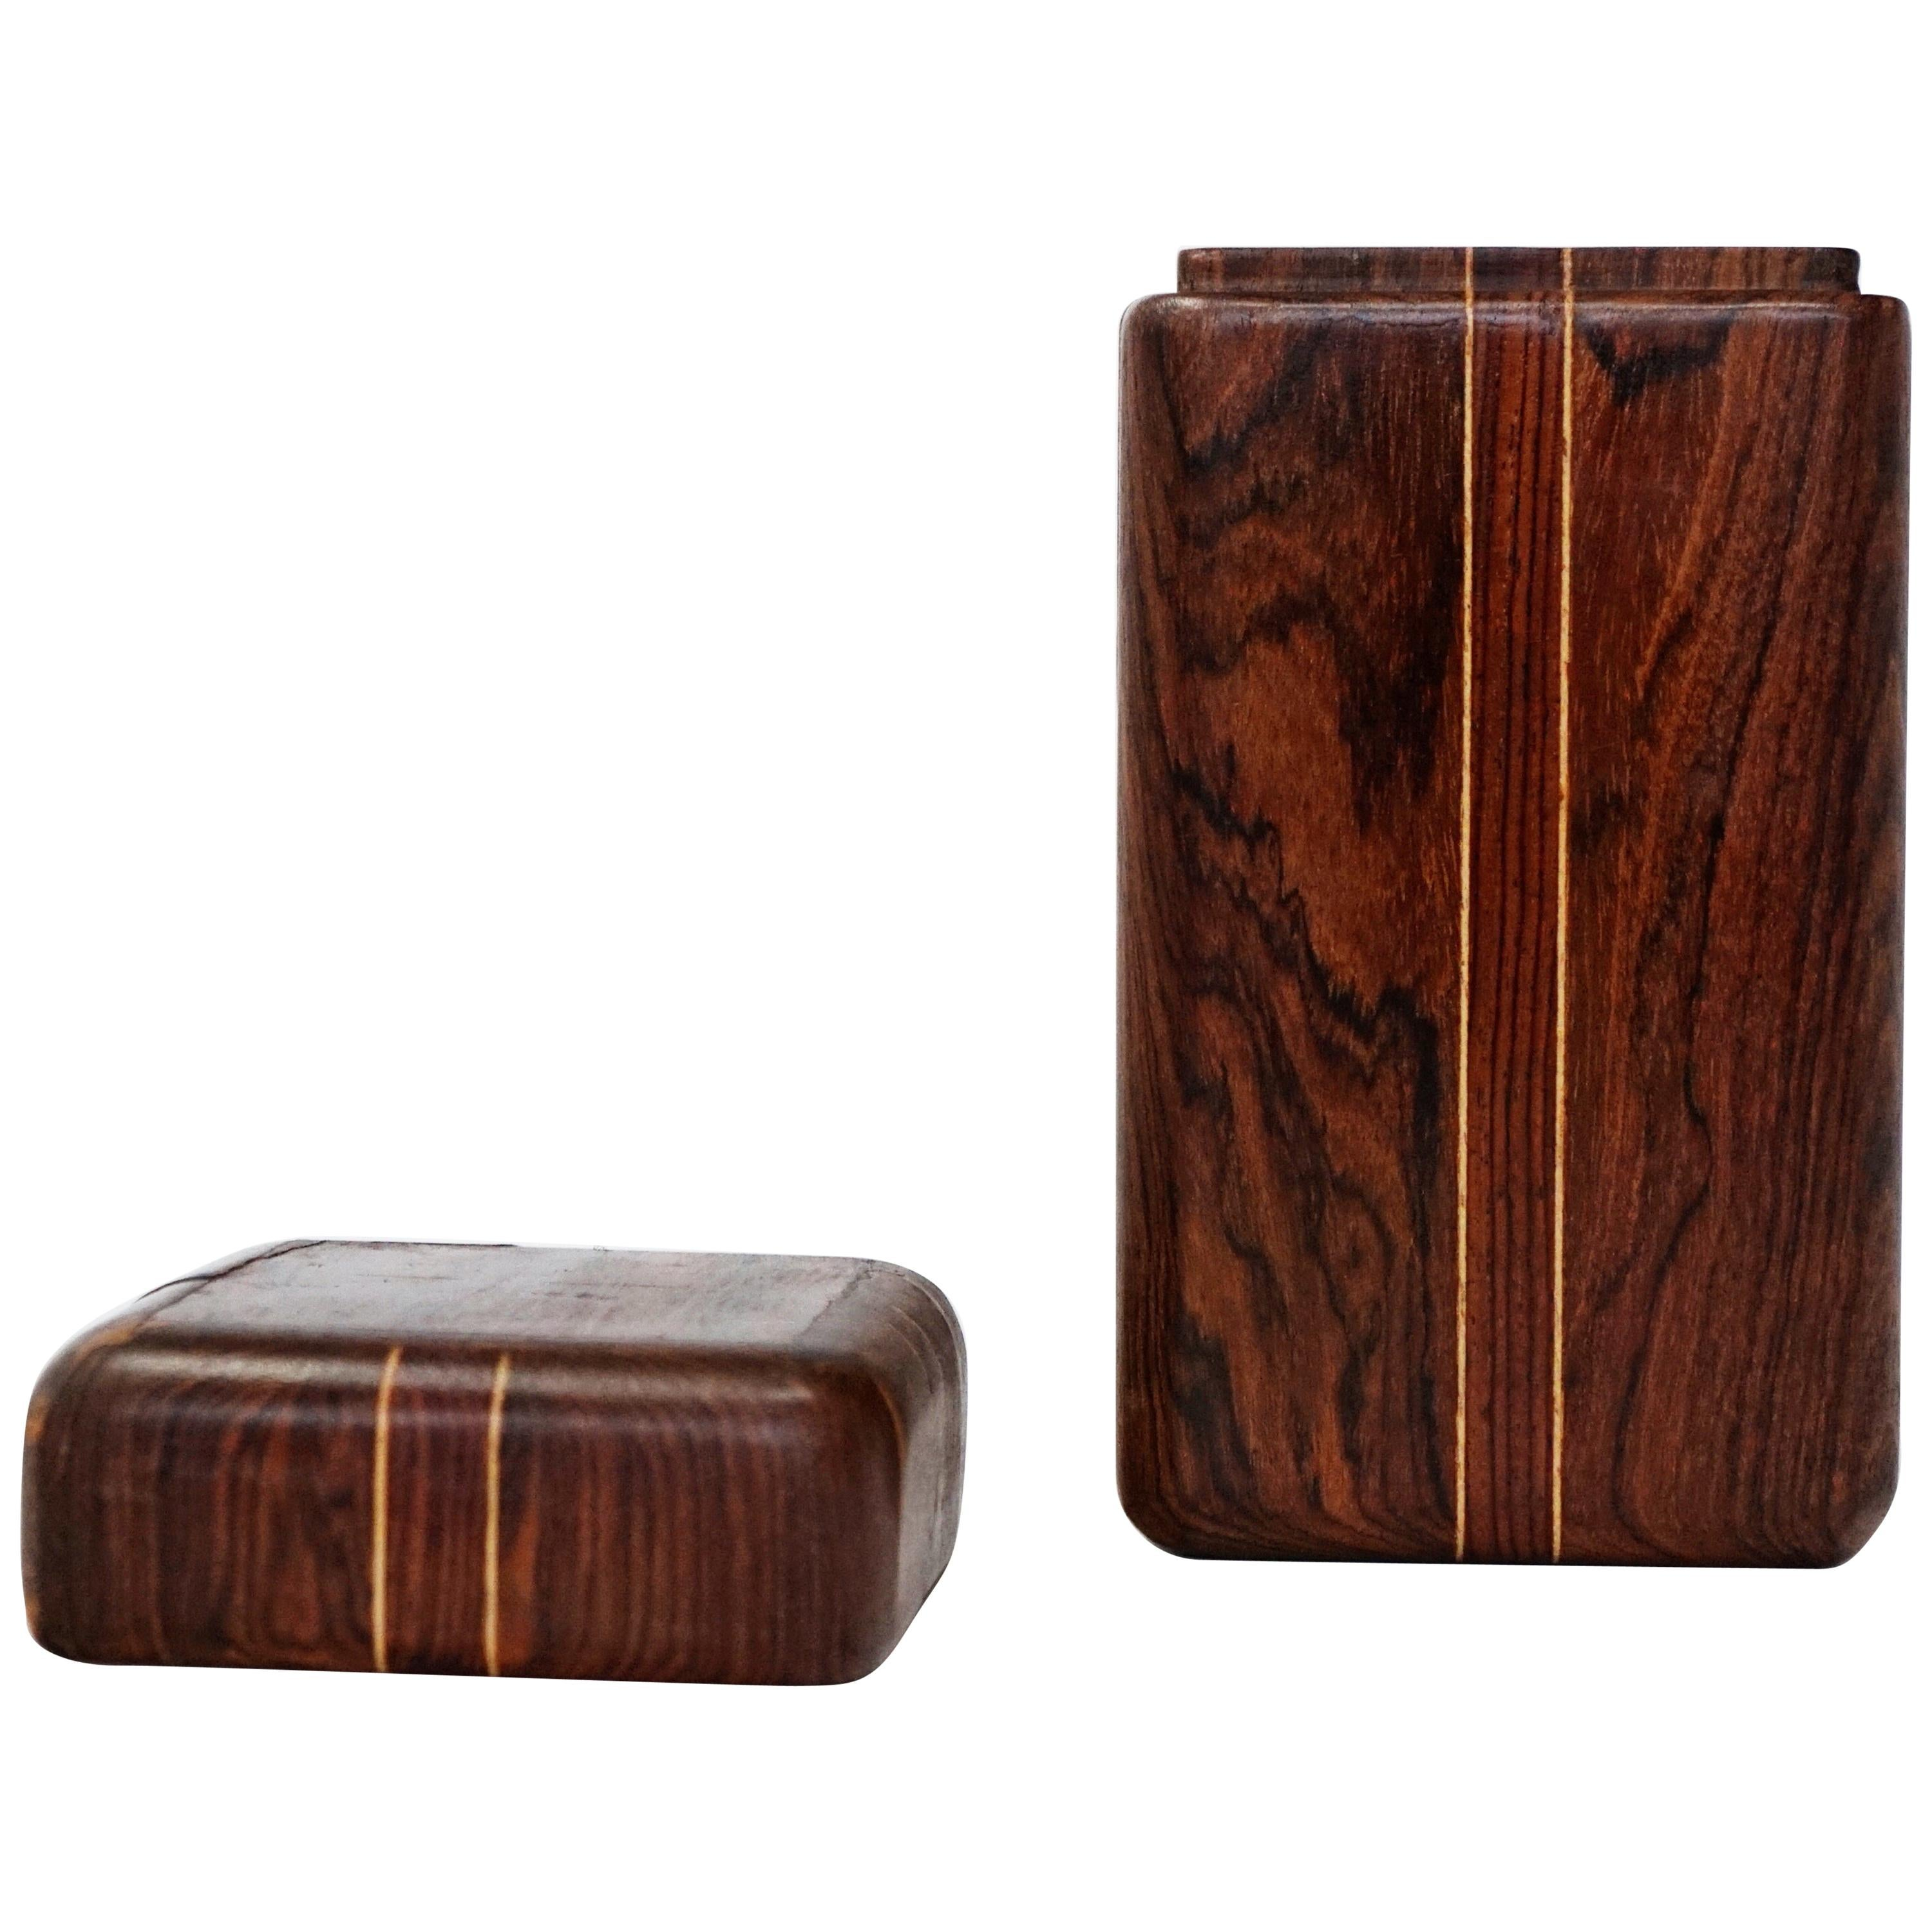 Don Shoemaker for Senal S.A. Cocobolo Rosewood Lidded Box, Signed